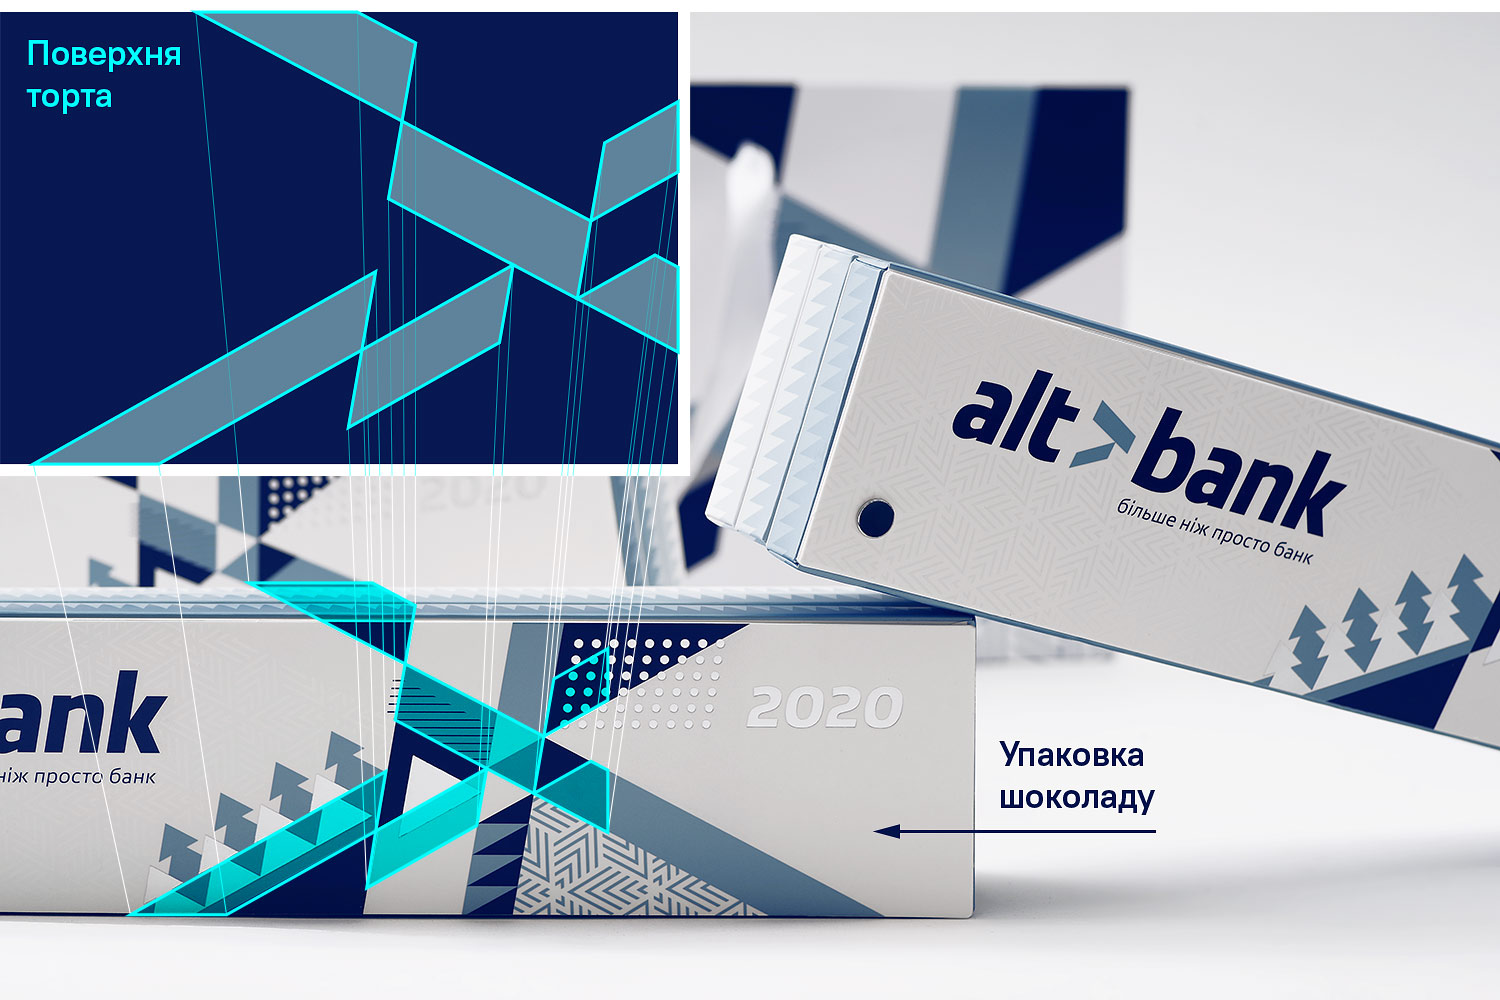 The layout of the chocolate packaging and Altbank cake design.